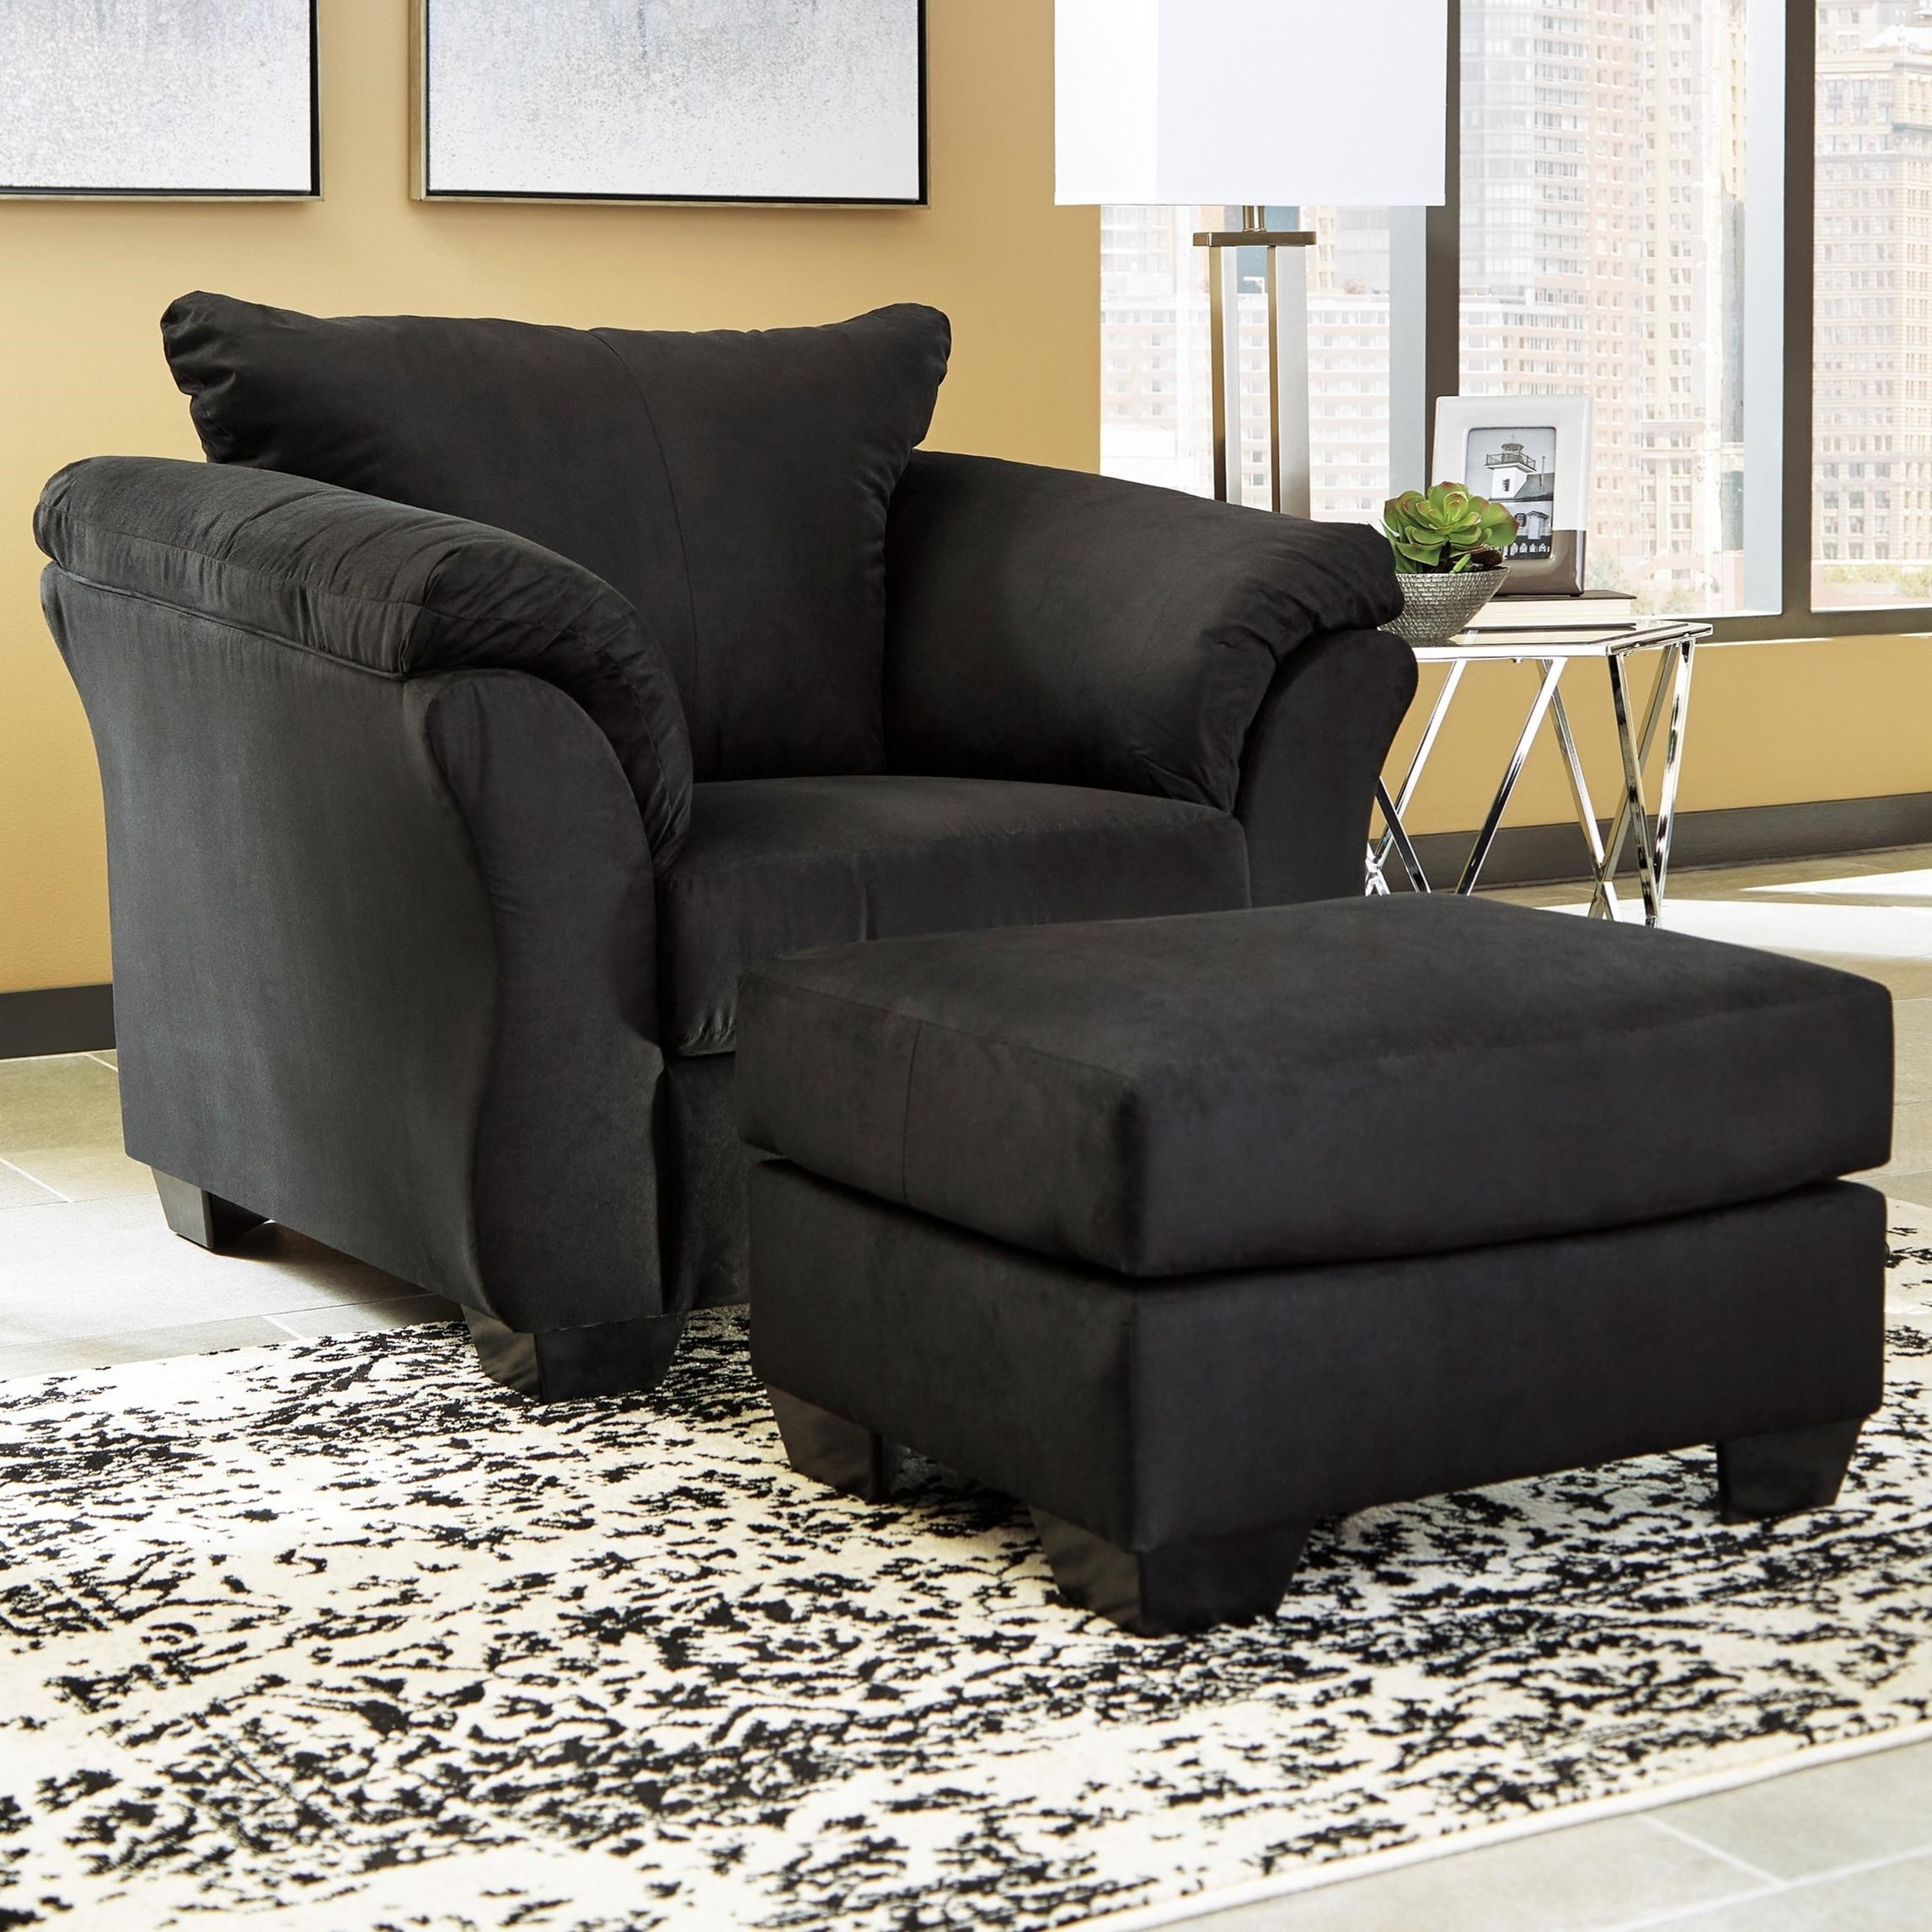 Darcy - Black Upholstered Chair and Ottoman by Signature Design by Ashley at Furniture Barn